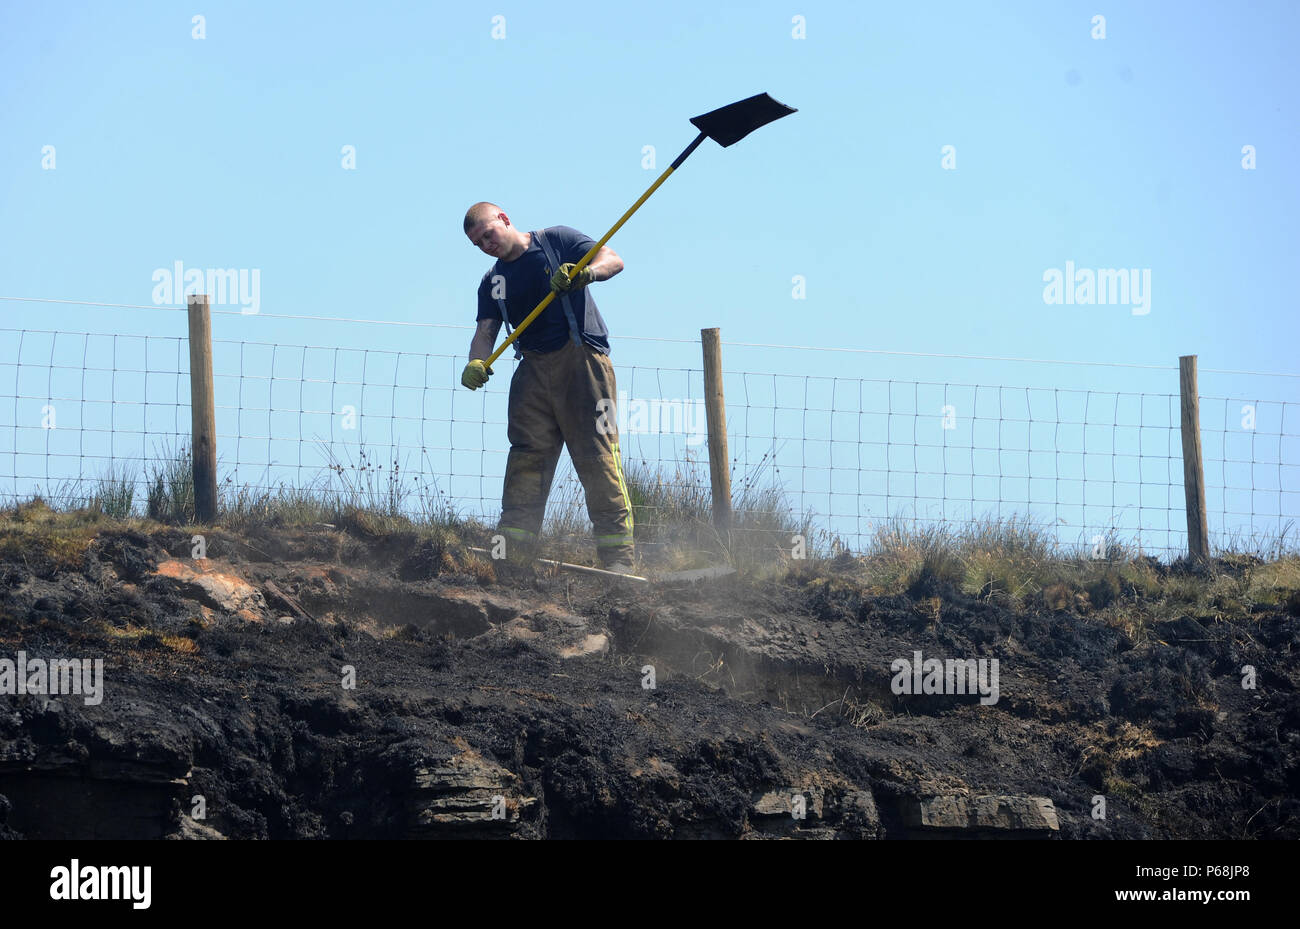 Winter Hill near Bolton, Lancashire, UK. 29th June, 2018. More than 80 firefighters from Lancashire, Merseyside and Cumbria continue to tackle a huge moorland fire for a second day on Winter Hill near Bolton, Lancashire. A 22 year old man from Bolton has been arrested on suspicion of arson with intent to endanger life. Picture by Credit: Paul Heyes/Alamy Live News - Stock Image